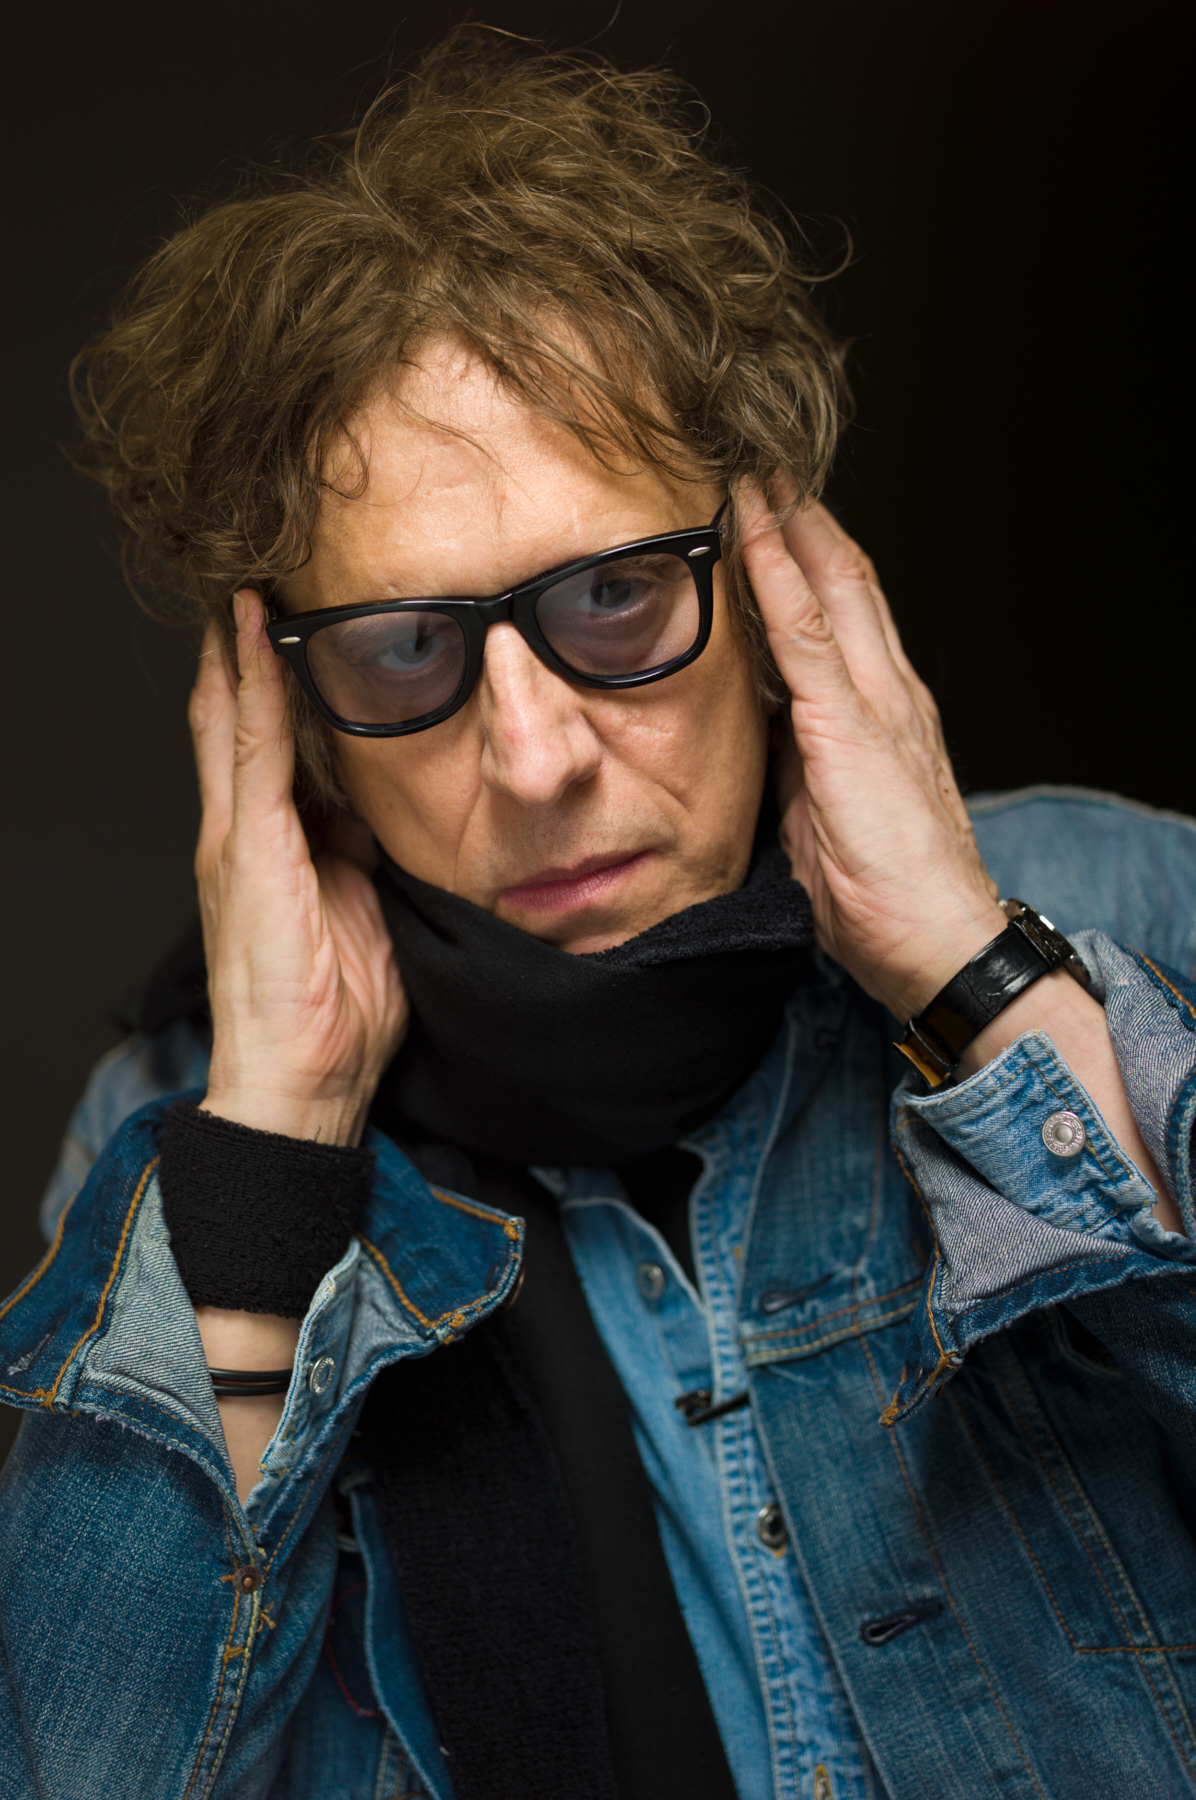 Mick Rock, Photographer